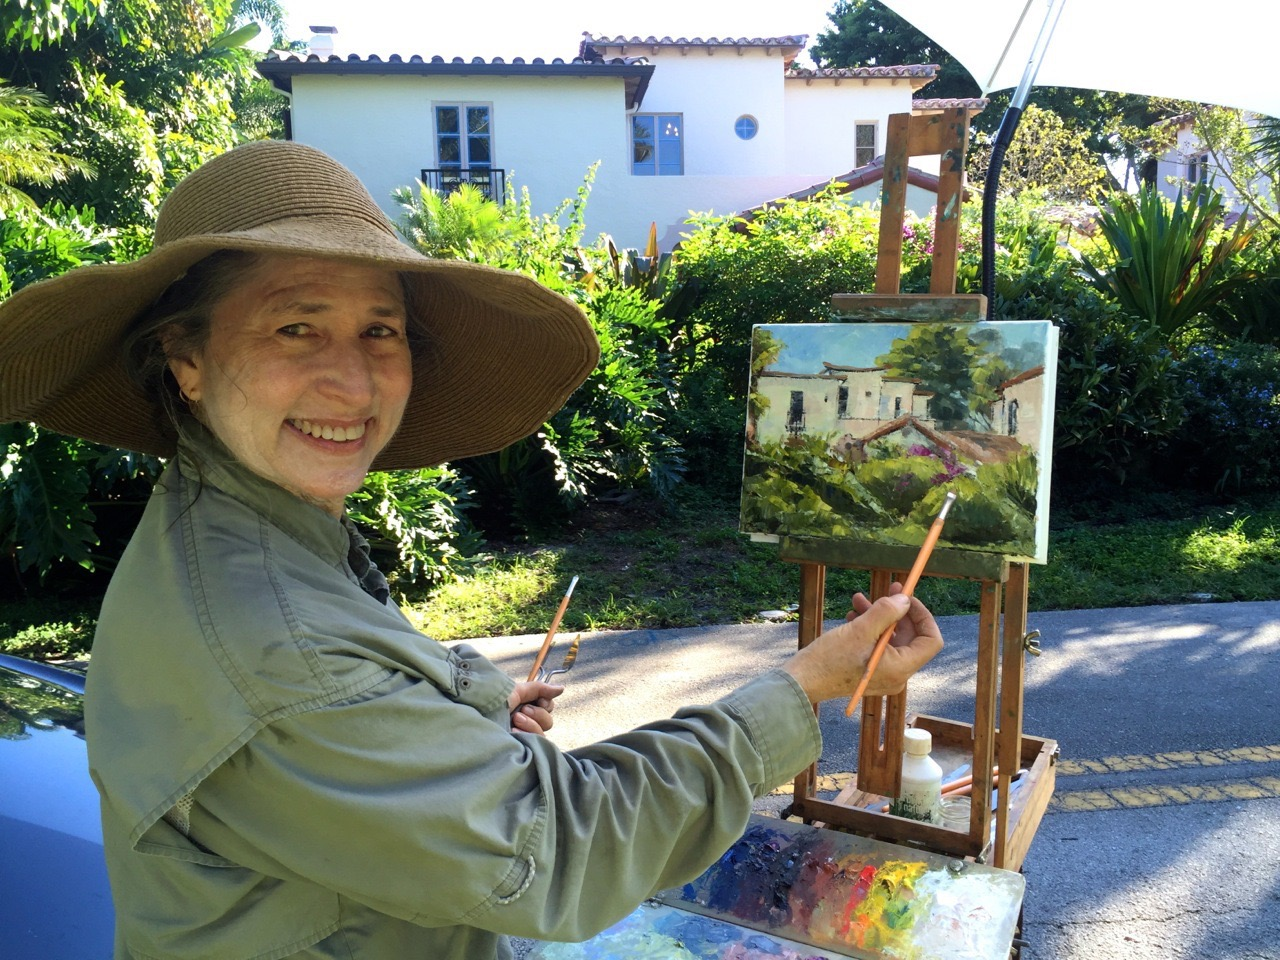 Plein air painting at the Old Floresta Neighborhood in Boca Raton